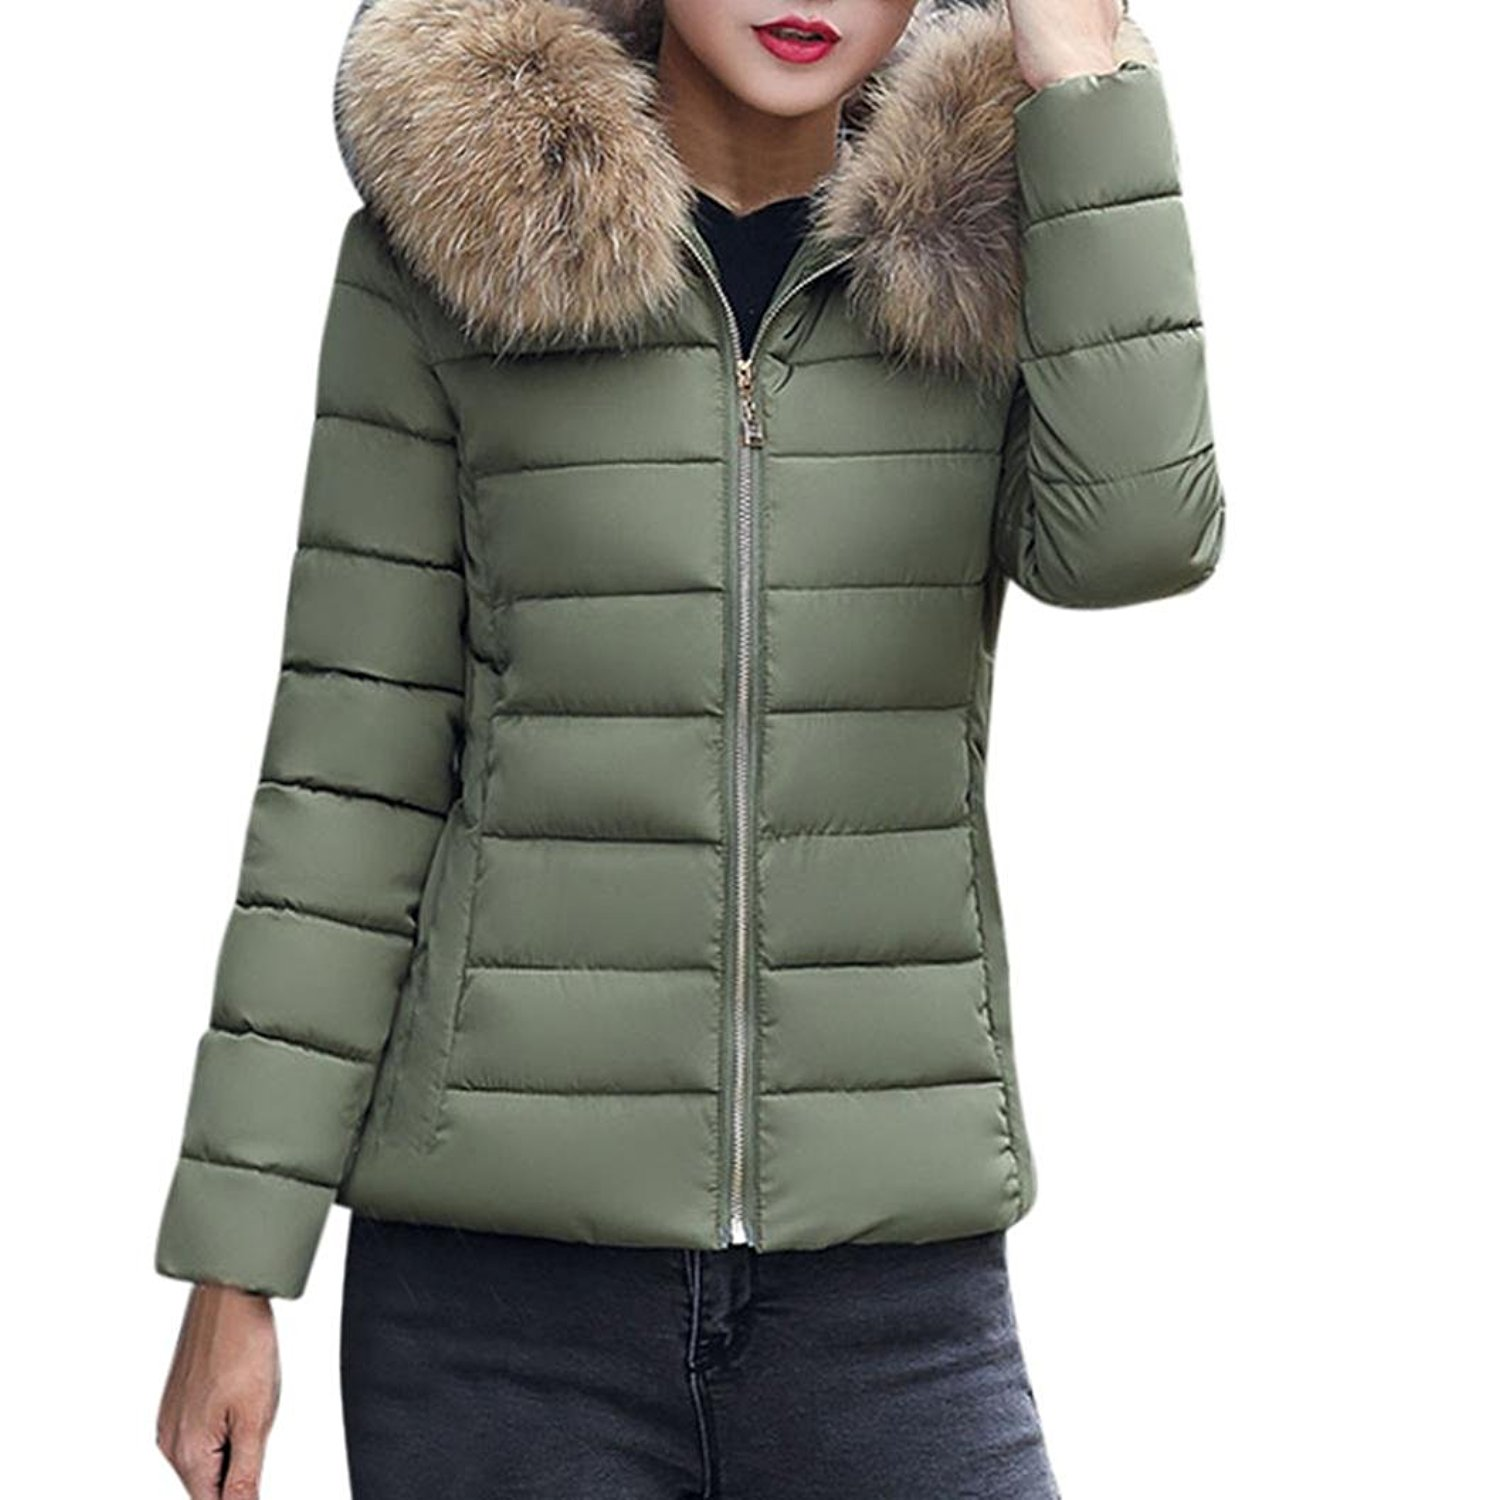 Wqueen Fashion Solid Women Casual Thicker Winter Slim Slim DownCoat Overcoat Casual Thicker Jacket